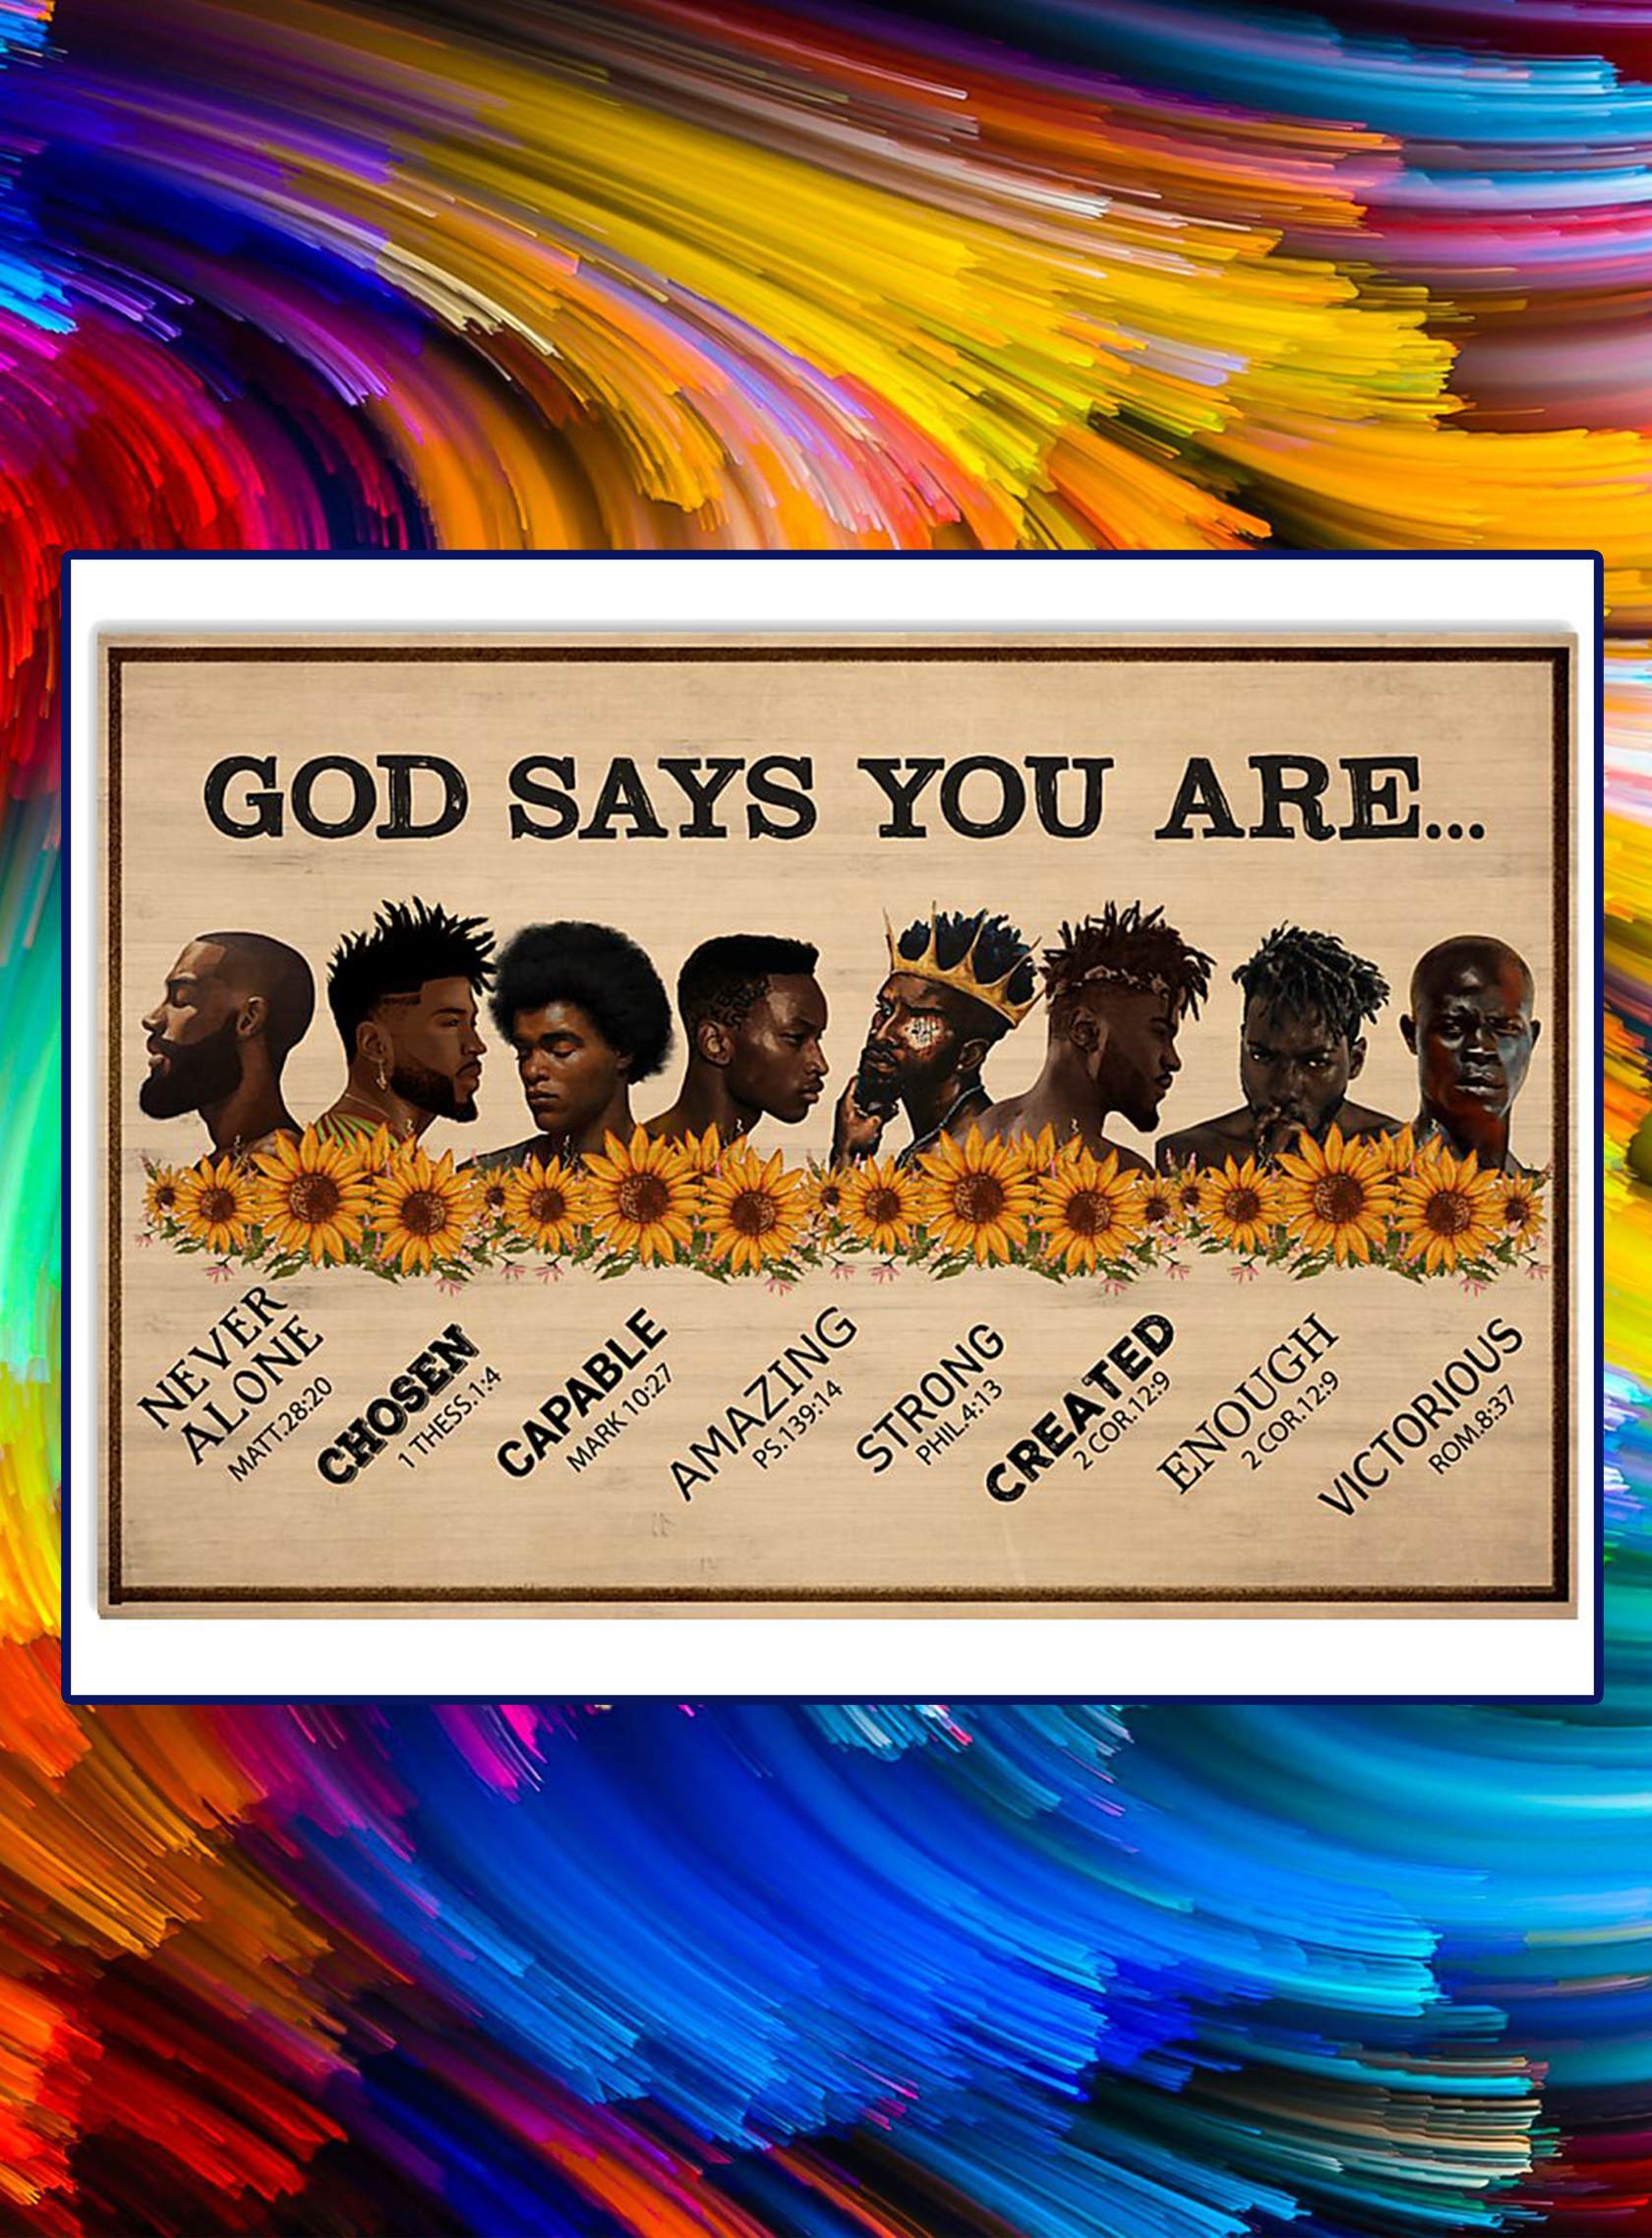 Black men God says you are poster - A1